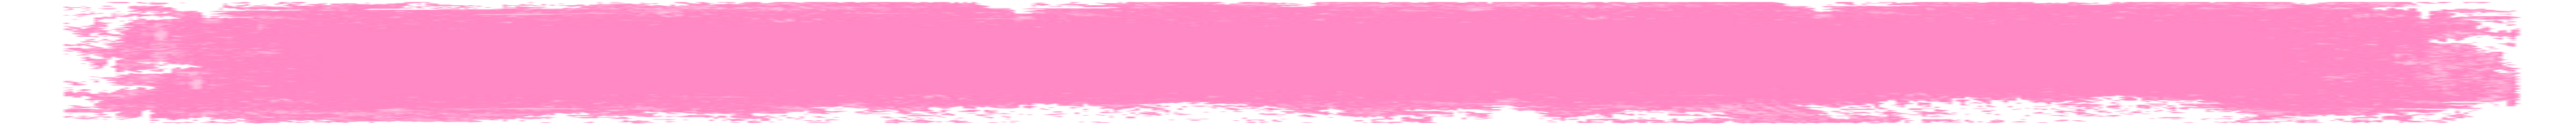 Pink line png. Chalked shabby paints lineshabby